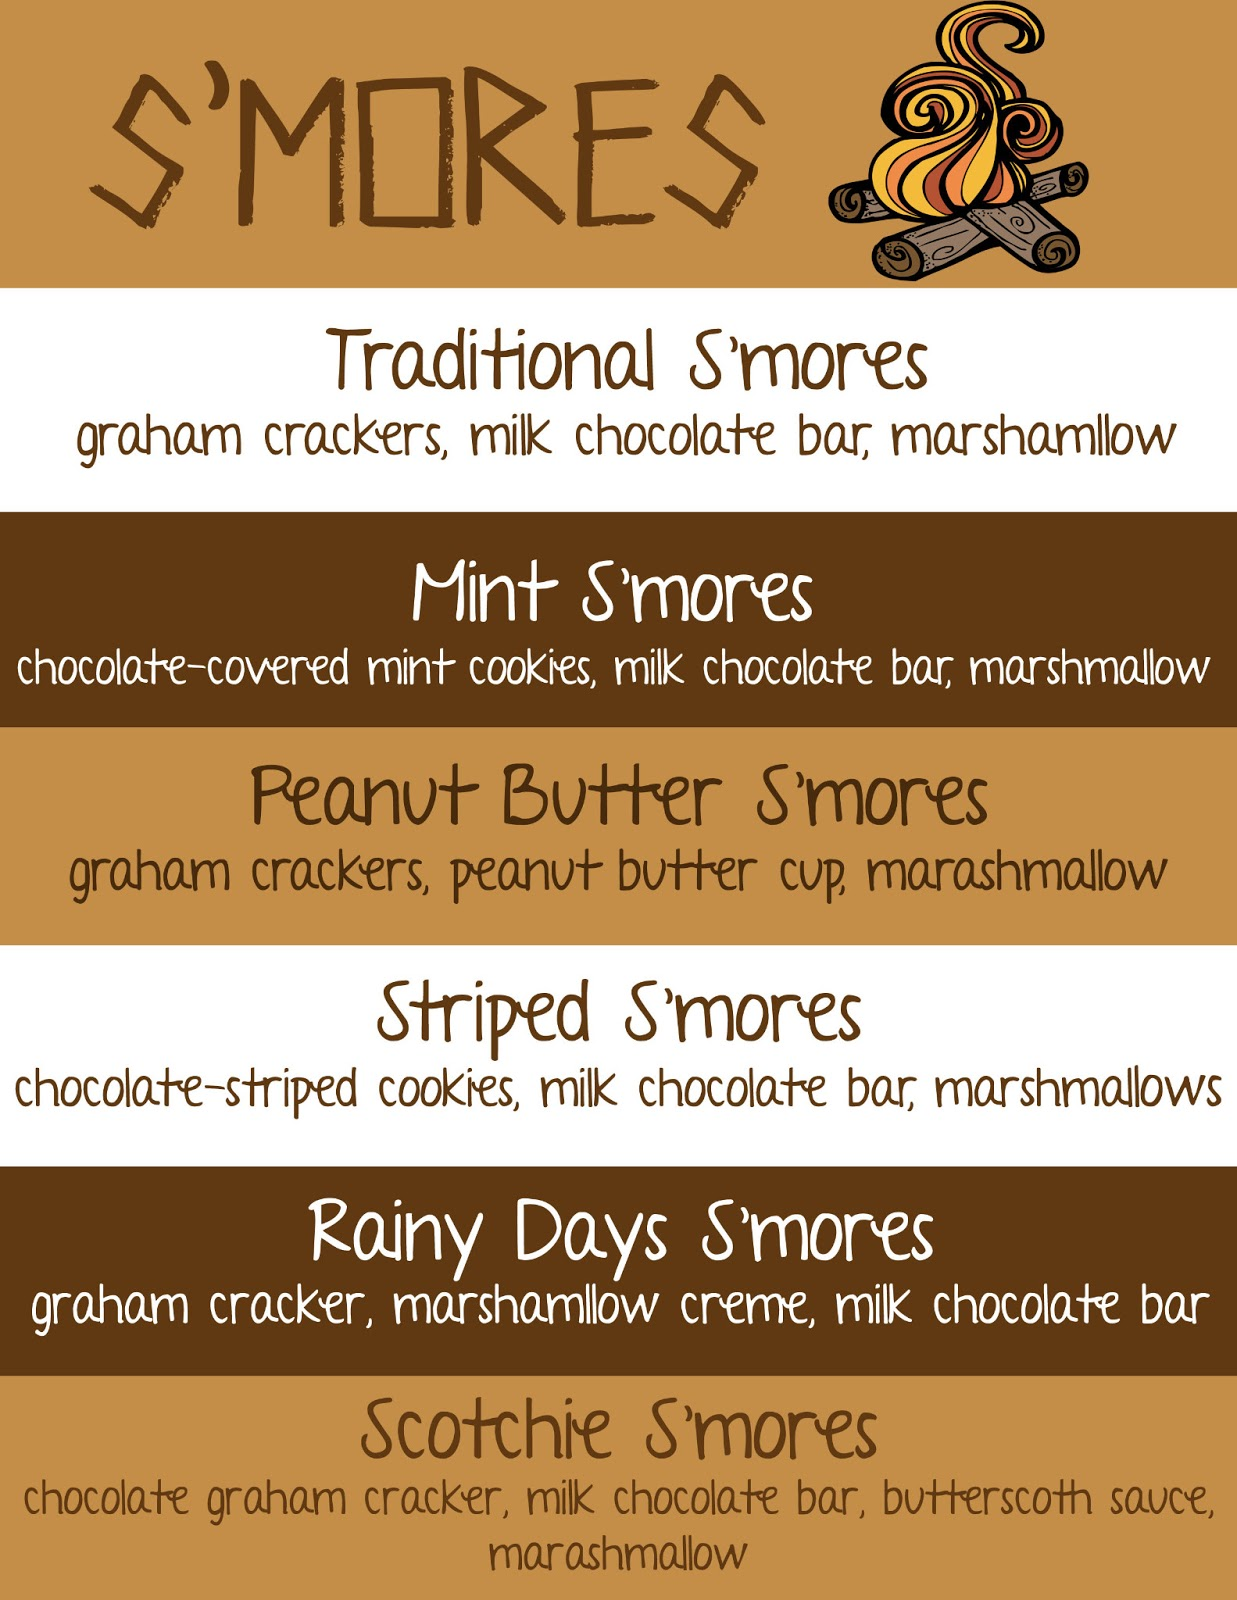 Take this free printable, frame it, and put it out on your s'mores bar ...